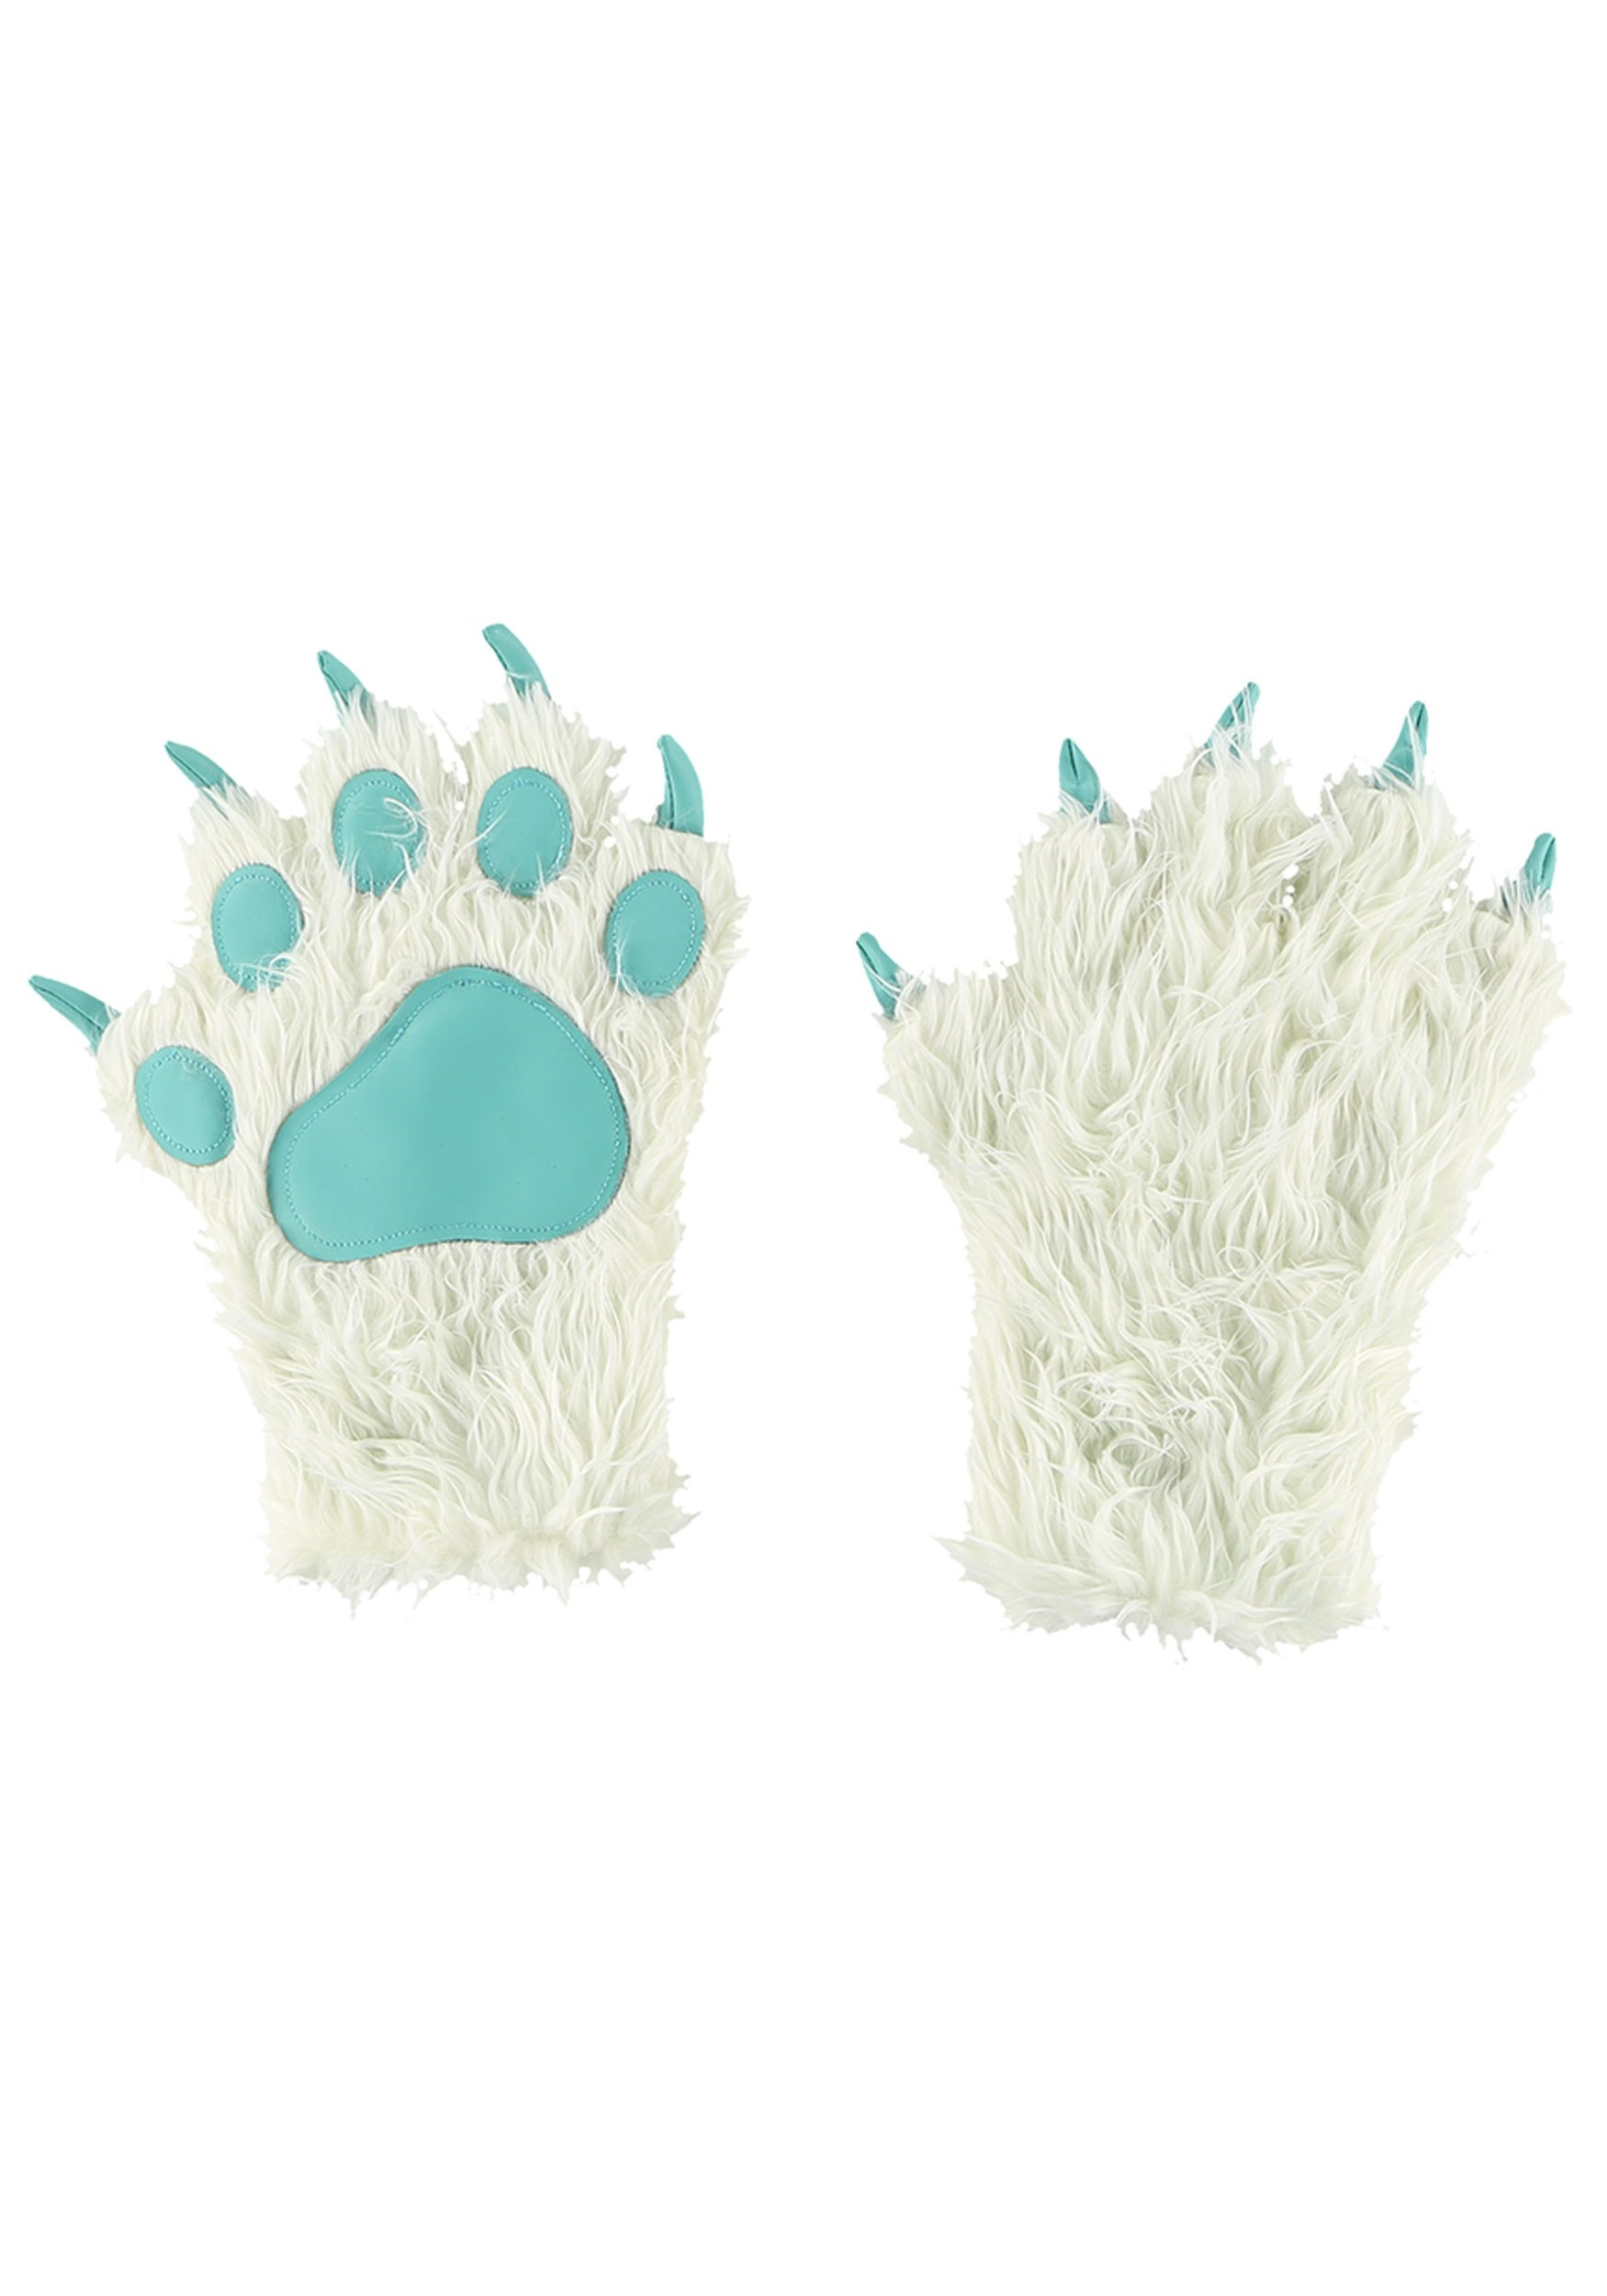 Yeti Paw Mitt Adult Gloves